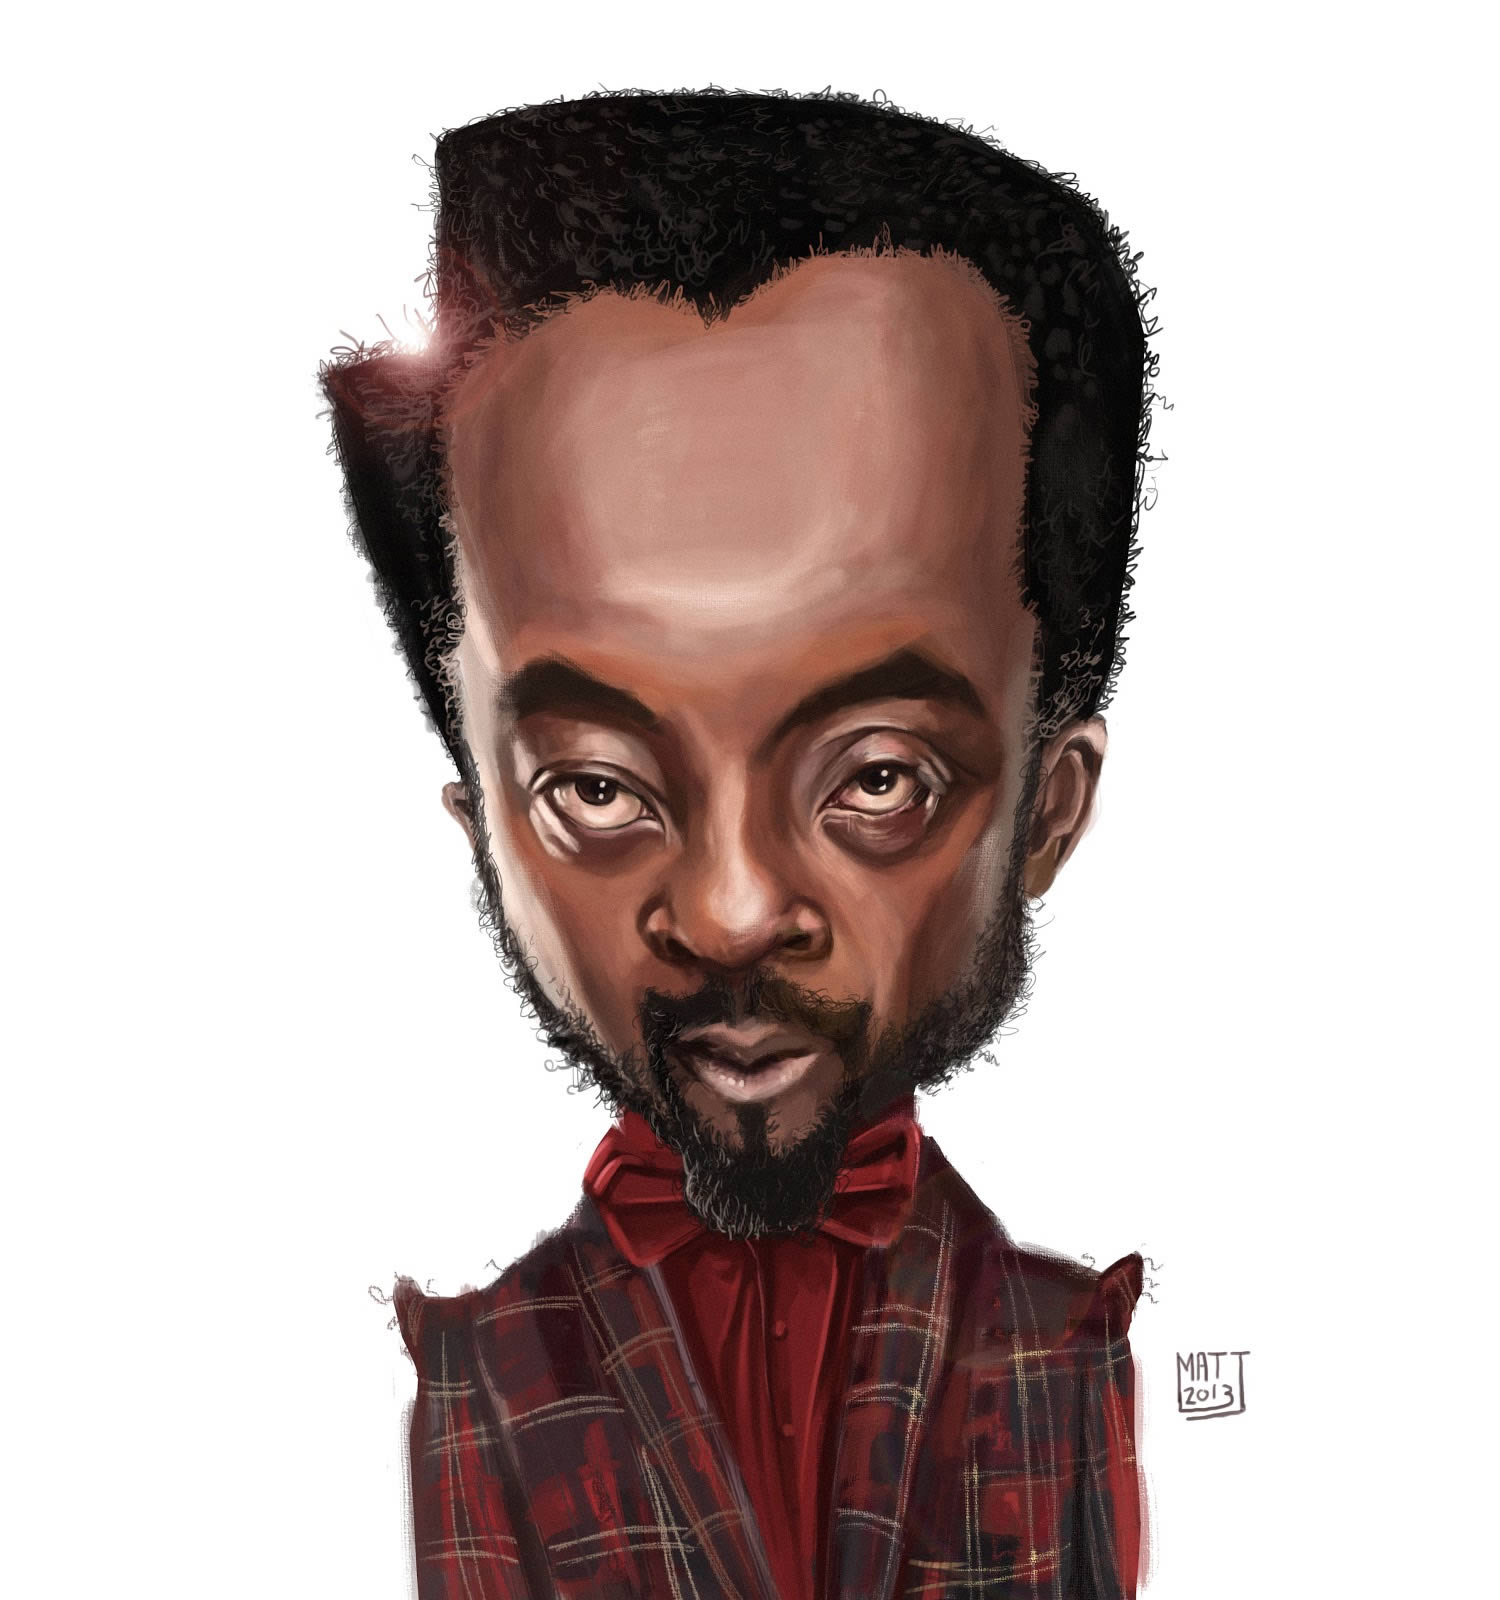 william, caricature by matt ryder